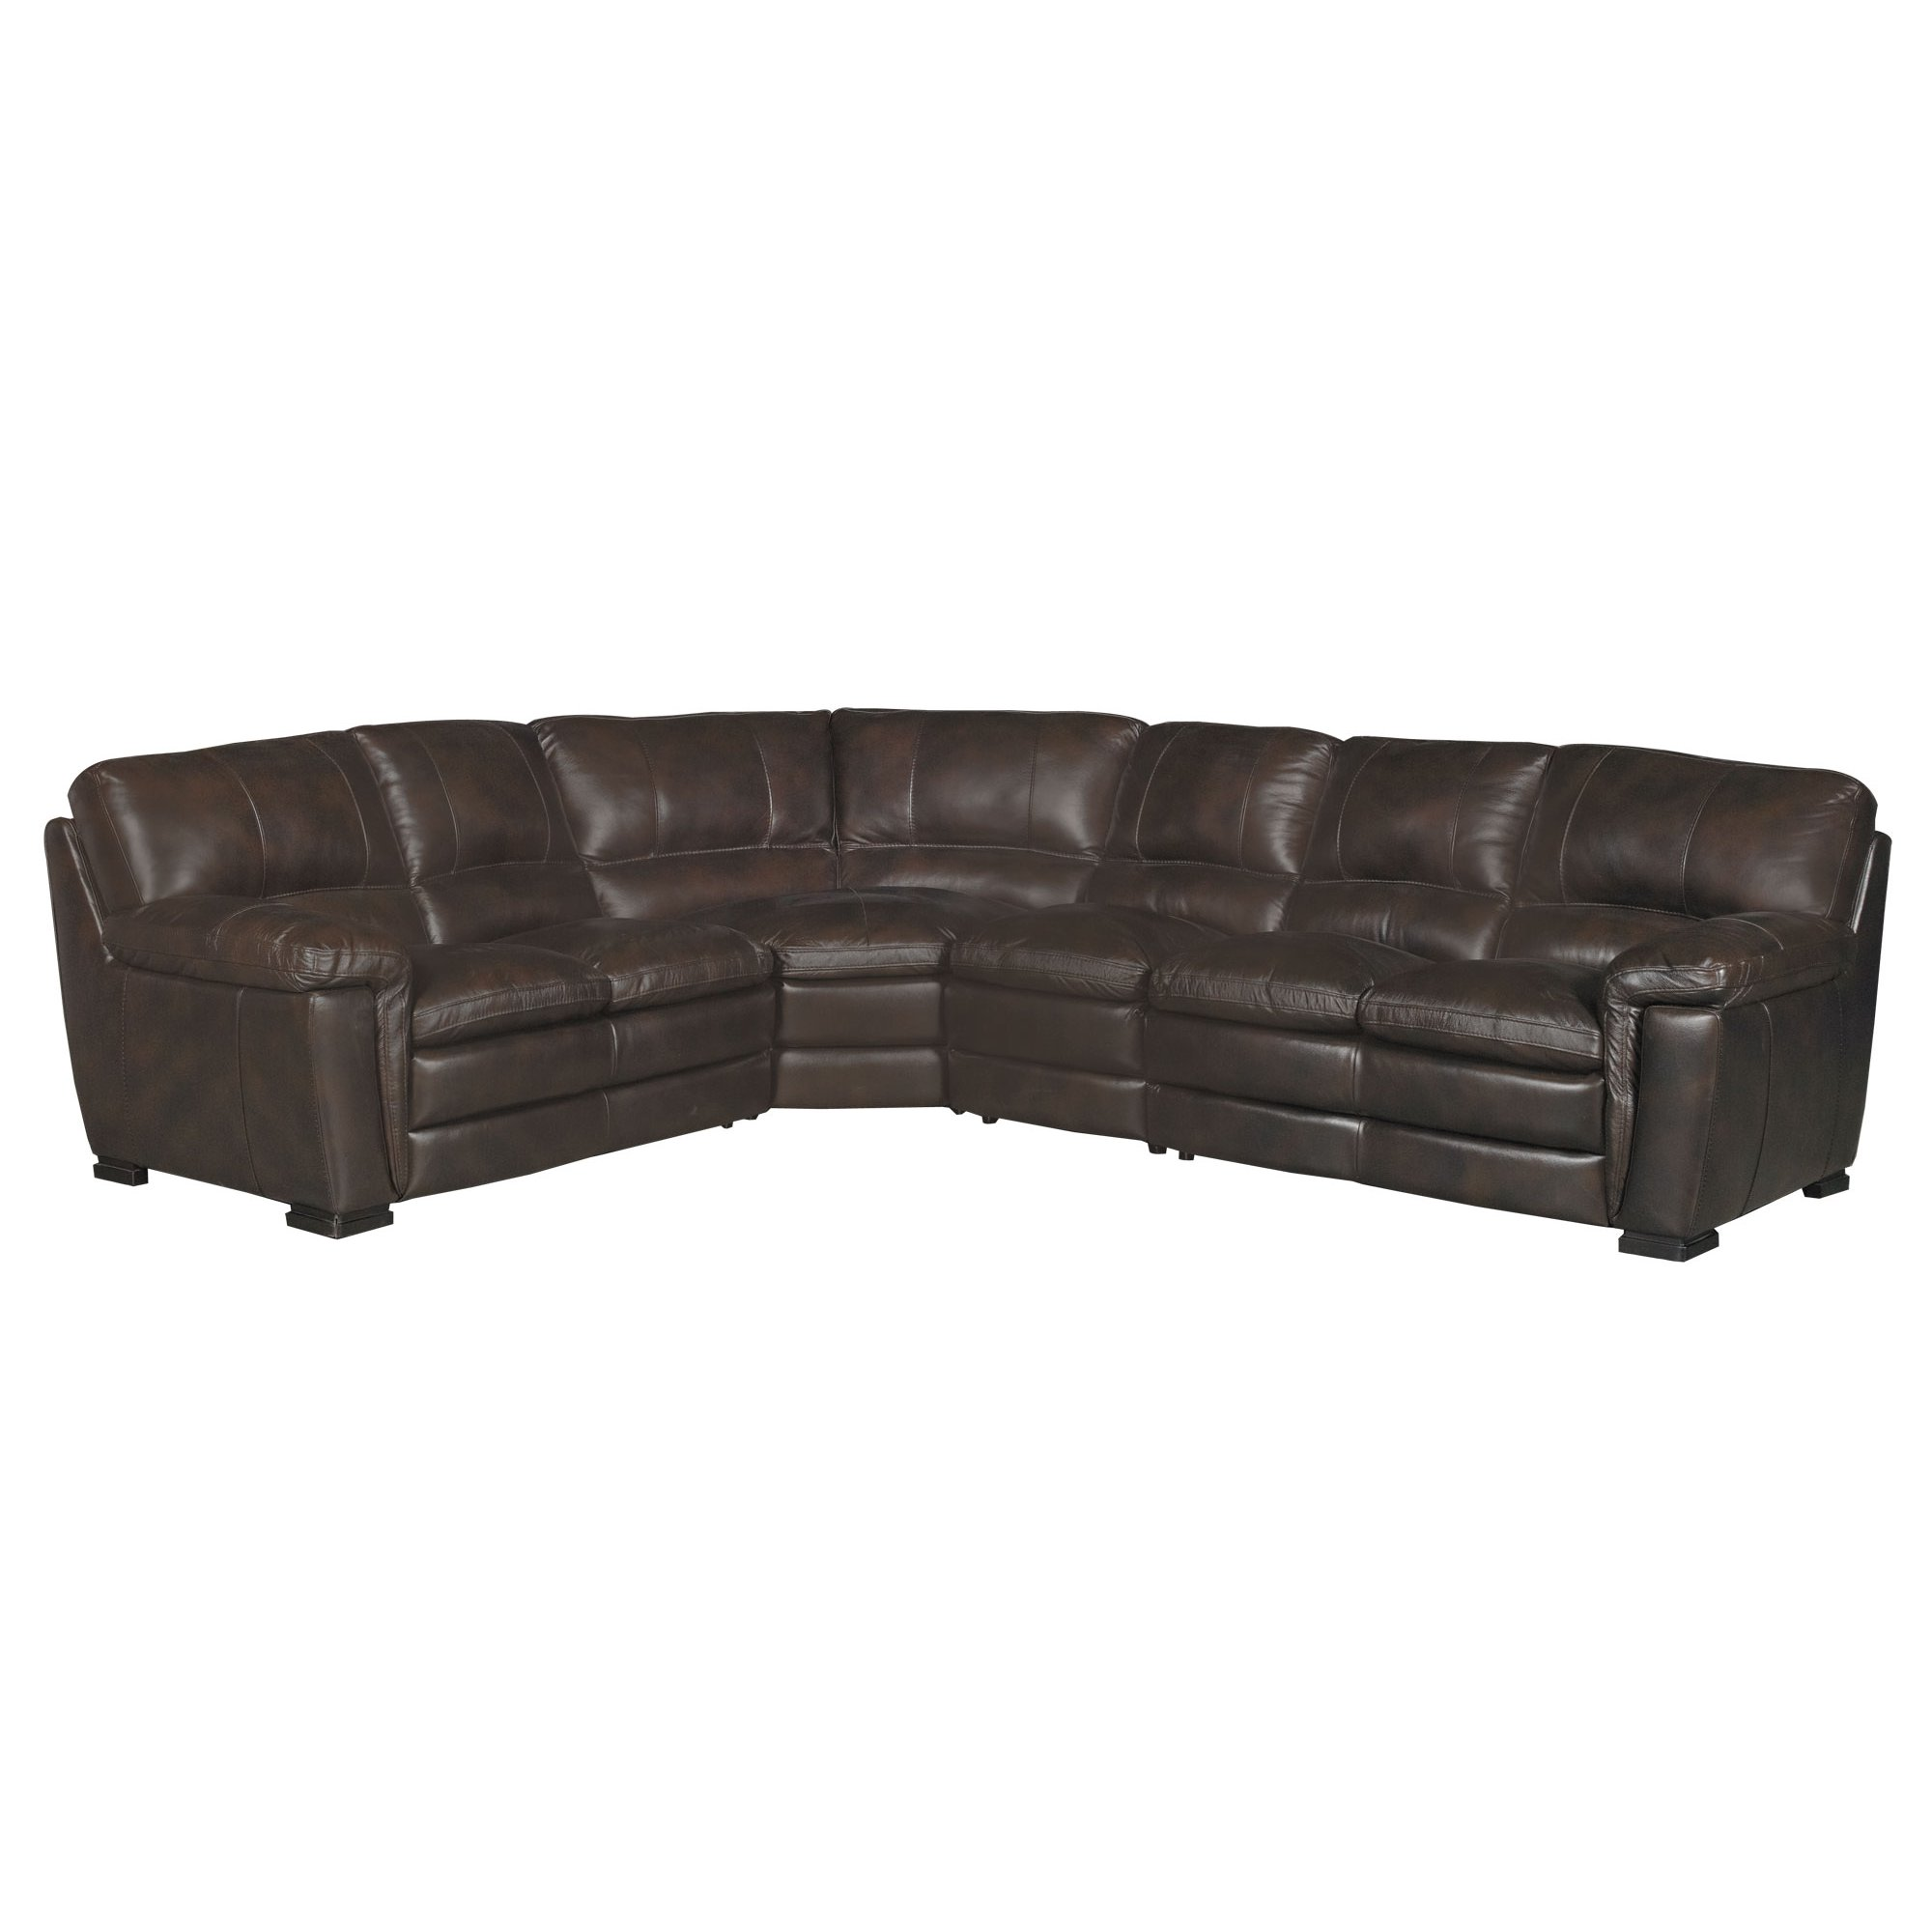 Etonnant Contemporary 4 Piece Brown Leather Sectional Sofa   Tanner